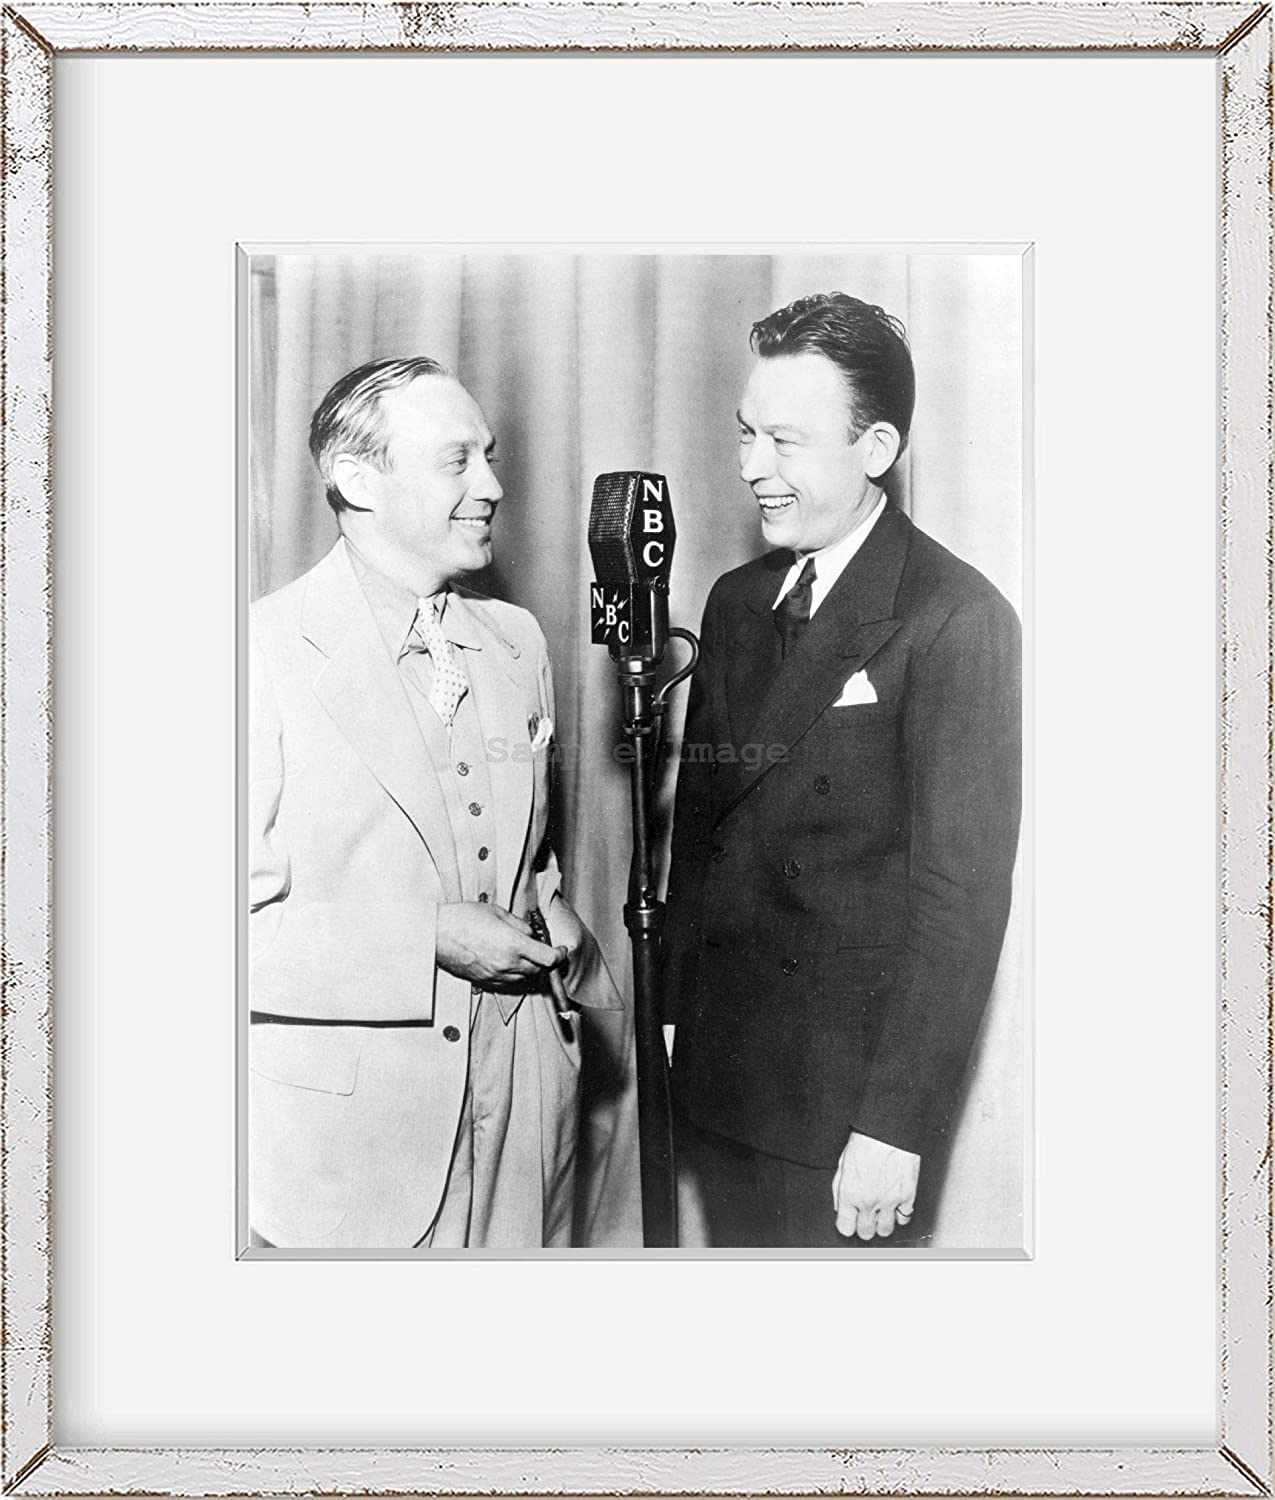 and Jack Benny g8 1936 photo Fred Allen three-quarter length portrait right